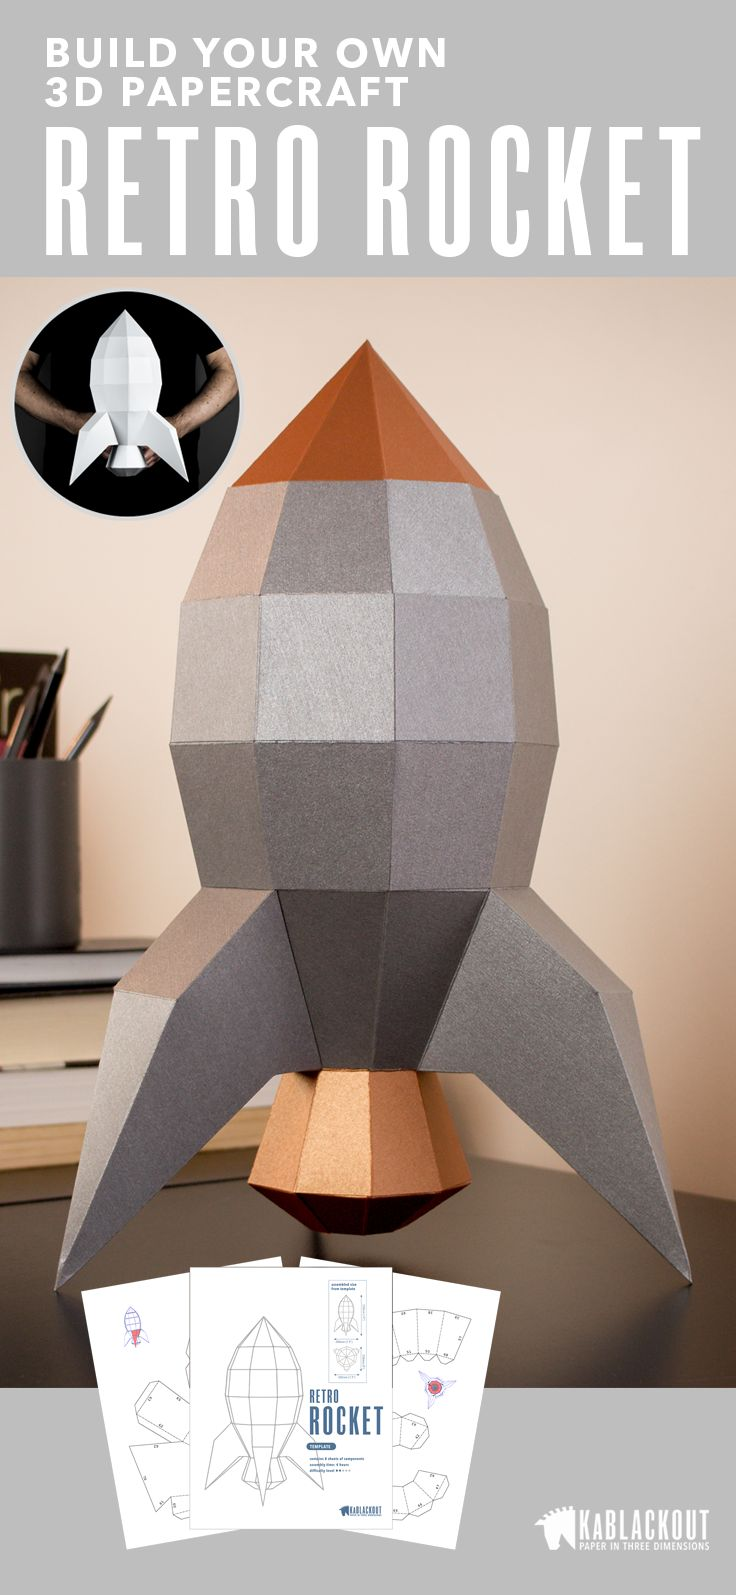 Retro Rocket papercraft. Build your own awesome low poly  paper craft rocket using this easy to follow template. Perfect for a mancave or kids bedroom.  Step by step instructions provide a great DIY craft project. Start creating today! | KaBlackout  #papercraft